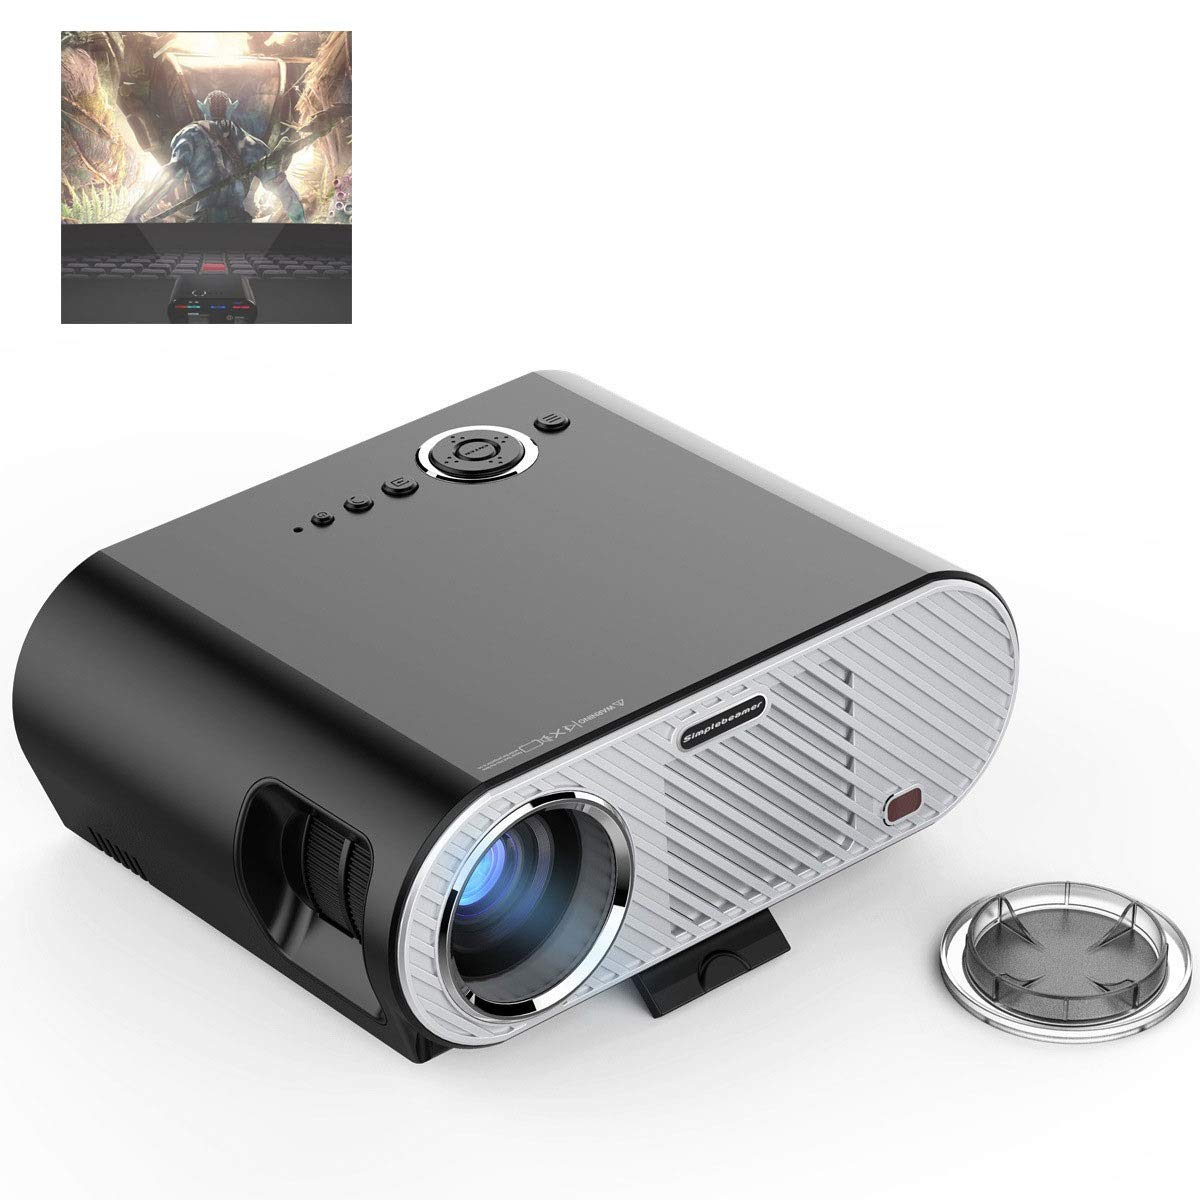 LiChenYao LED Projector 1080P Intelligent Android Projector WiFi Home Entertainment Projector